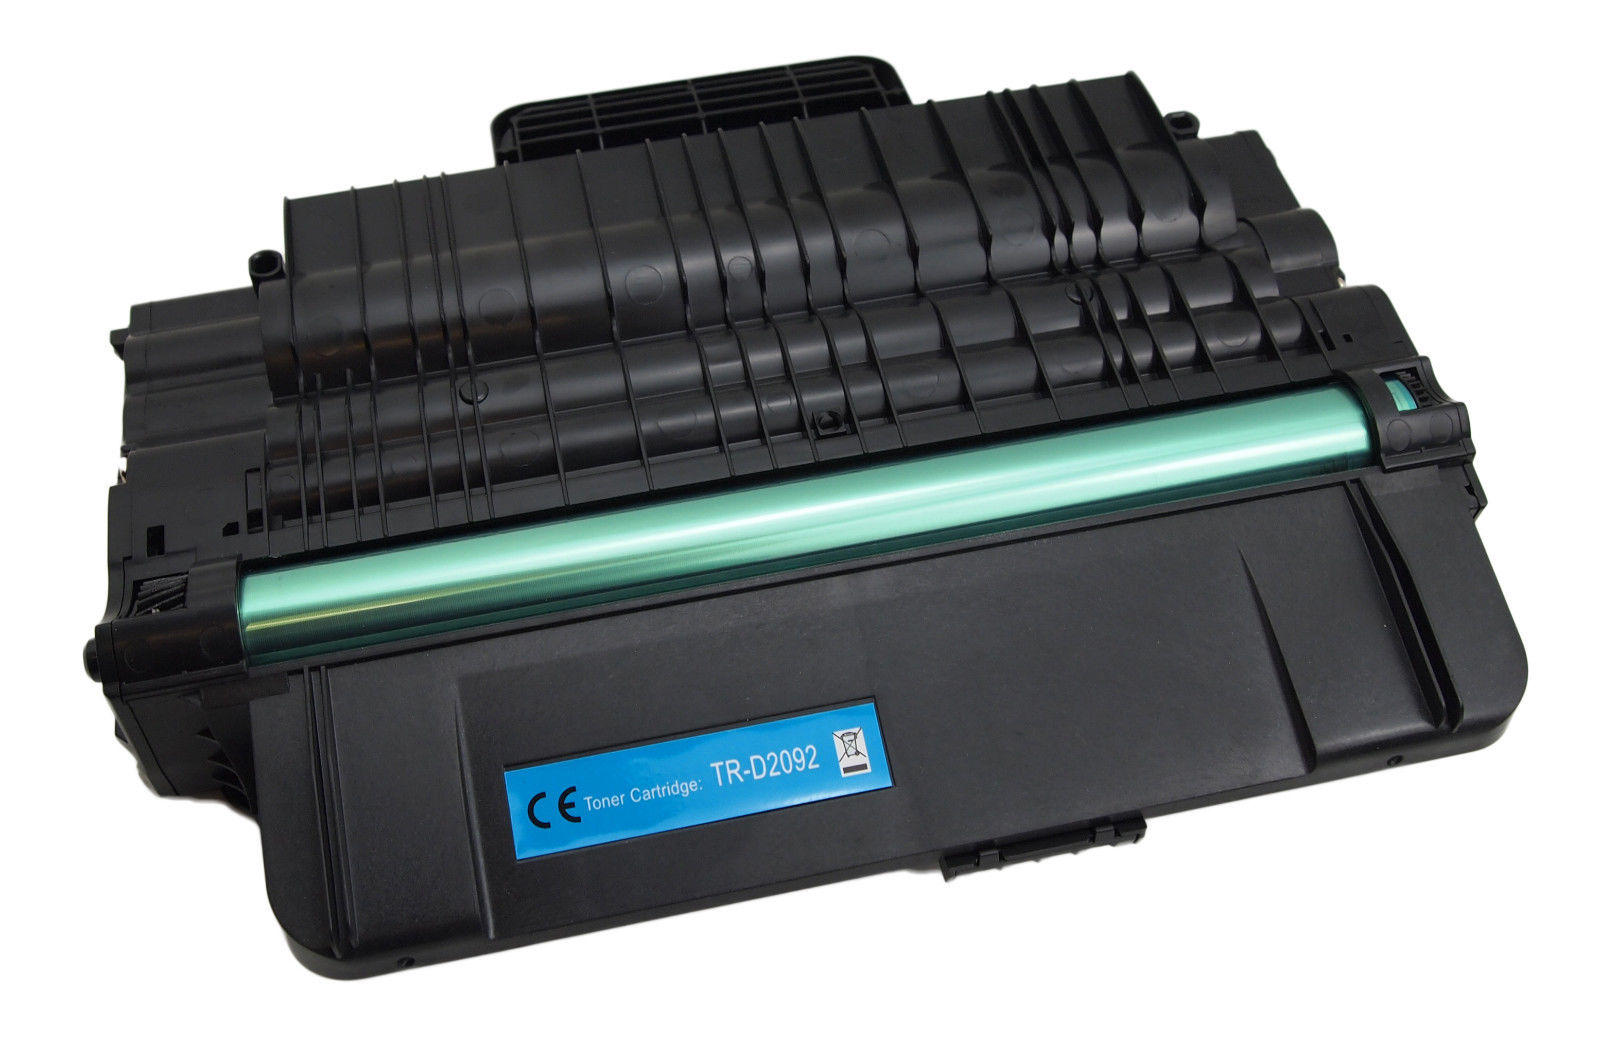 Compatible toner cartridges for Samsung printers